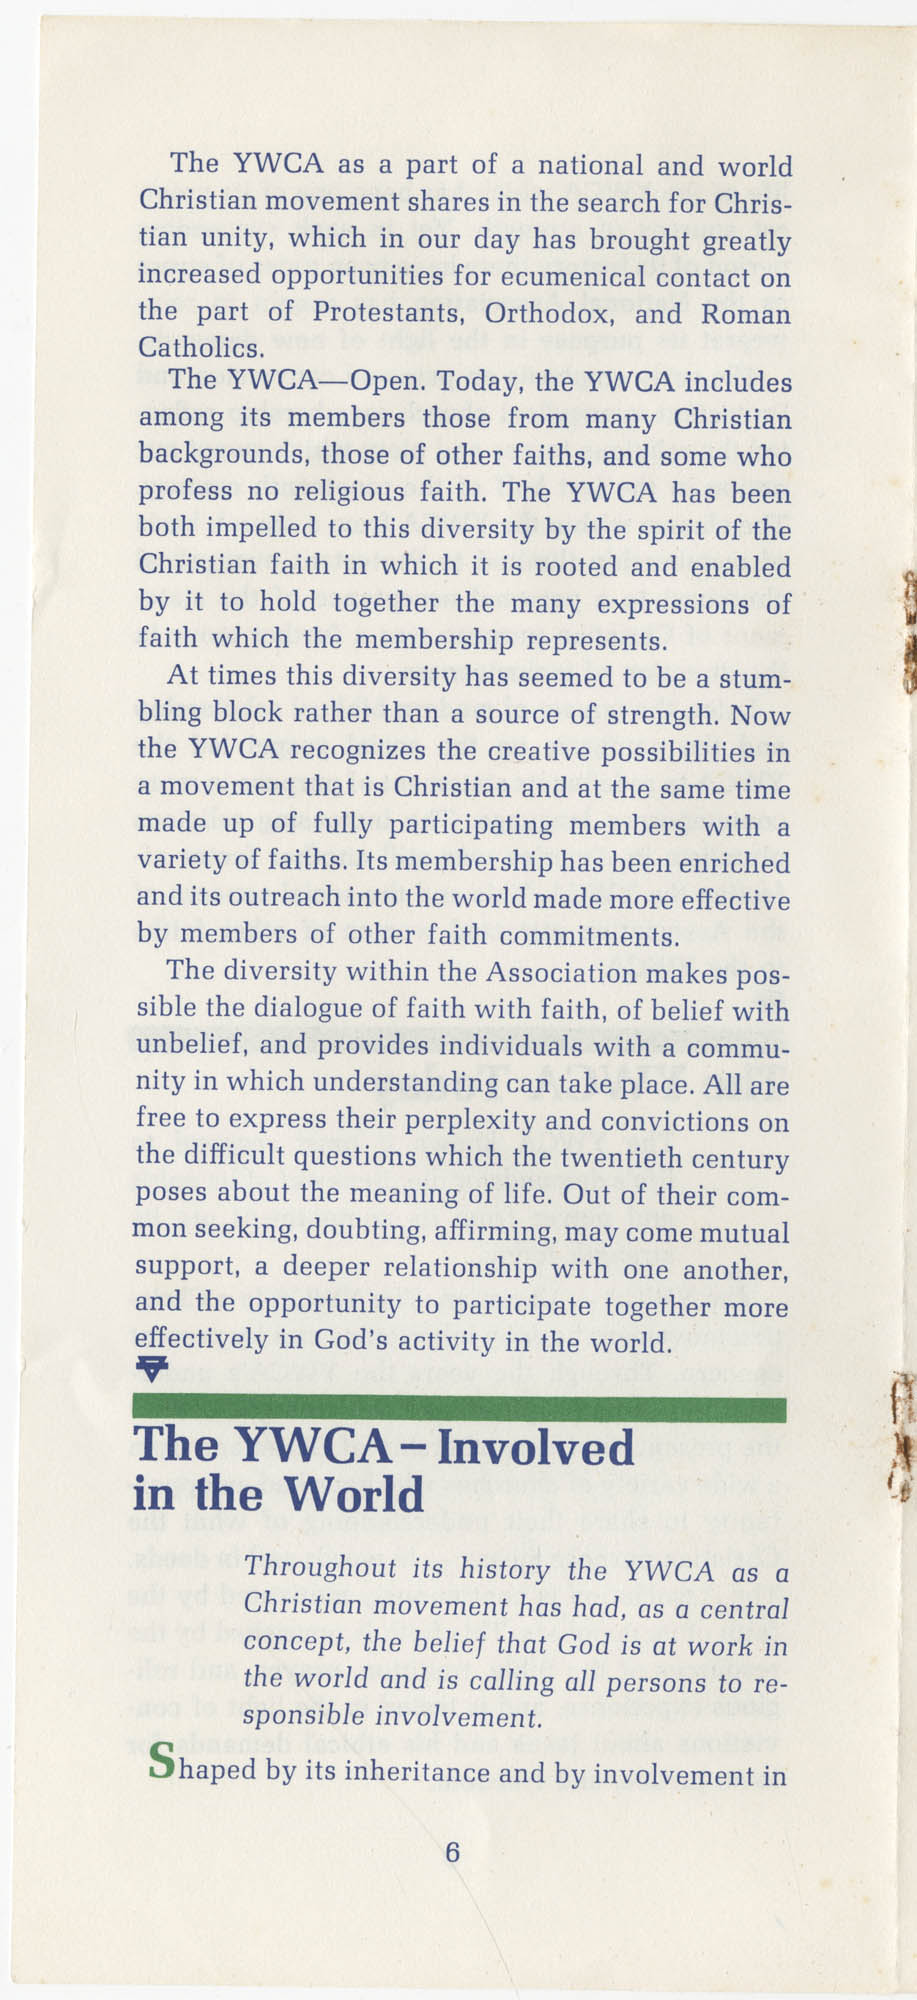 The Y.W.C.A.: A Christian Movement Open to the World, Page 6